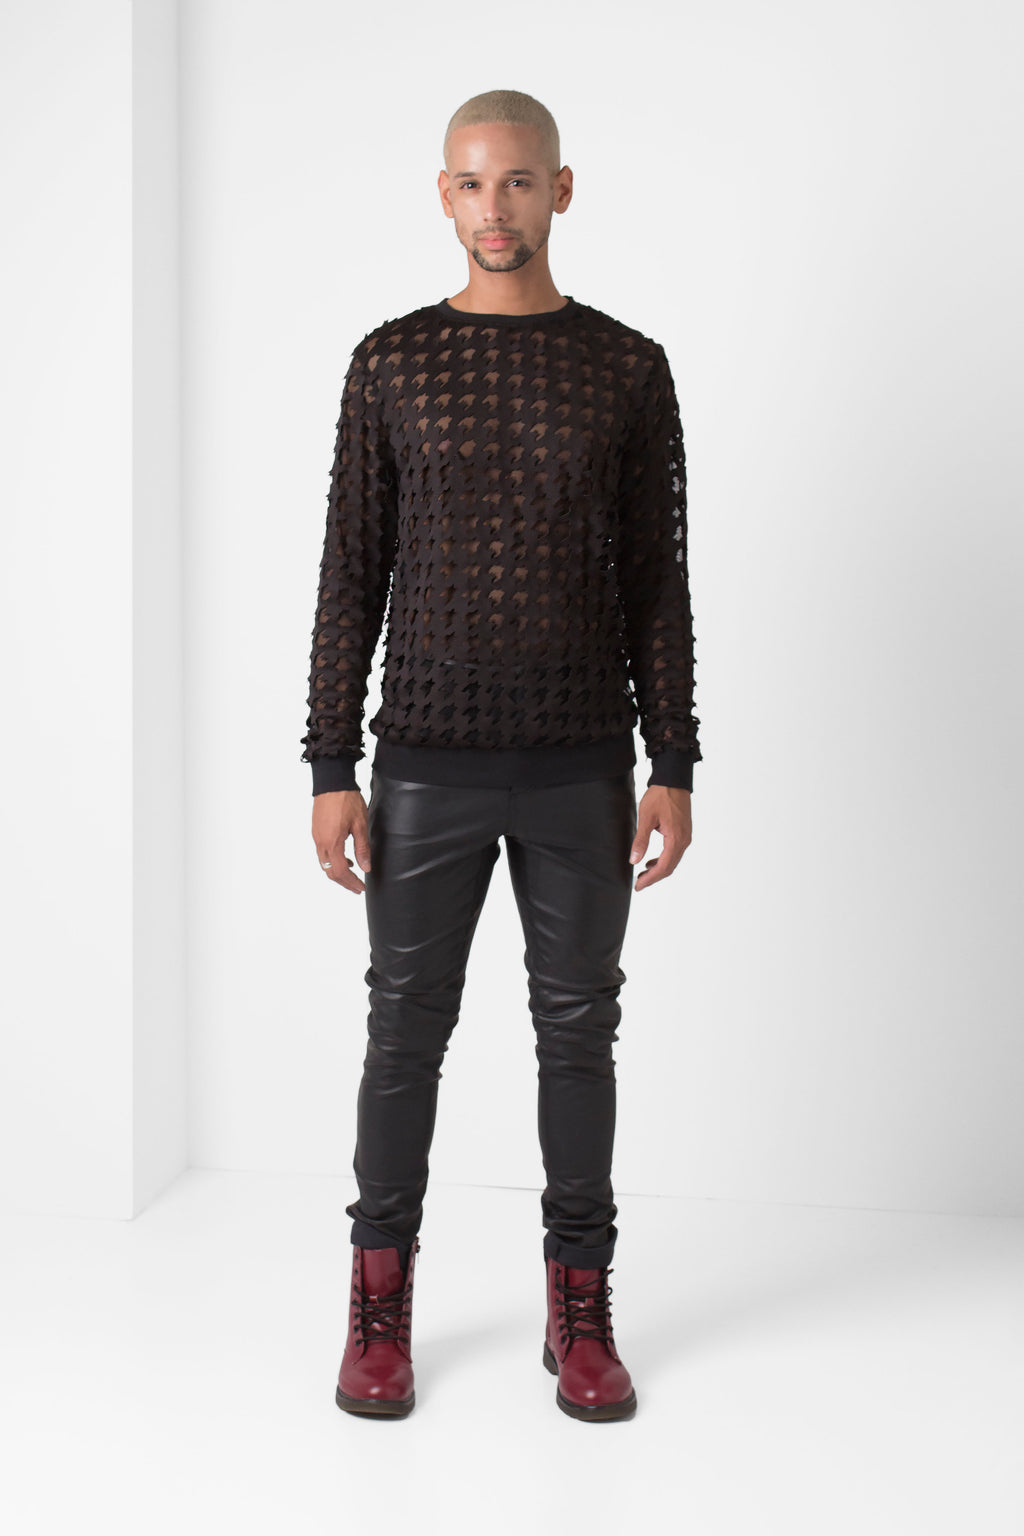 Laser-Cut Houndstooth Pullover - pacorogiene